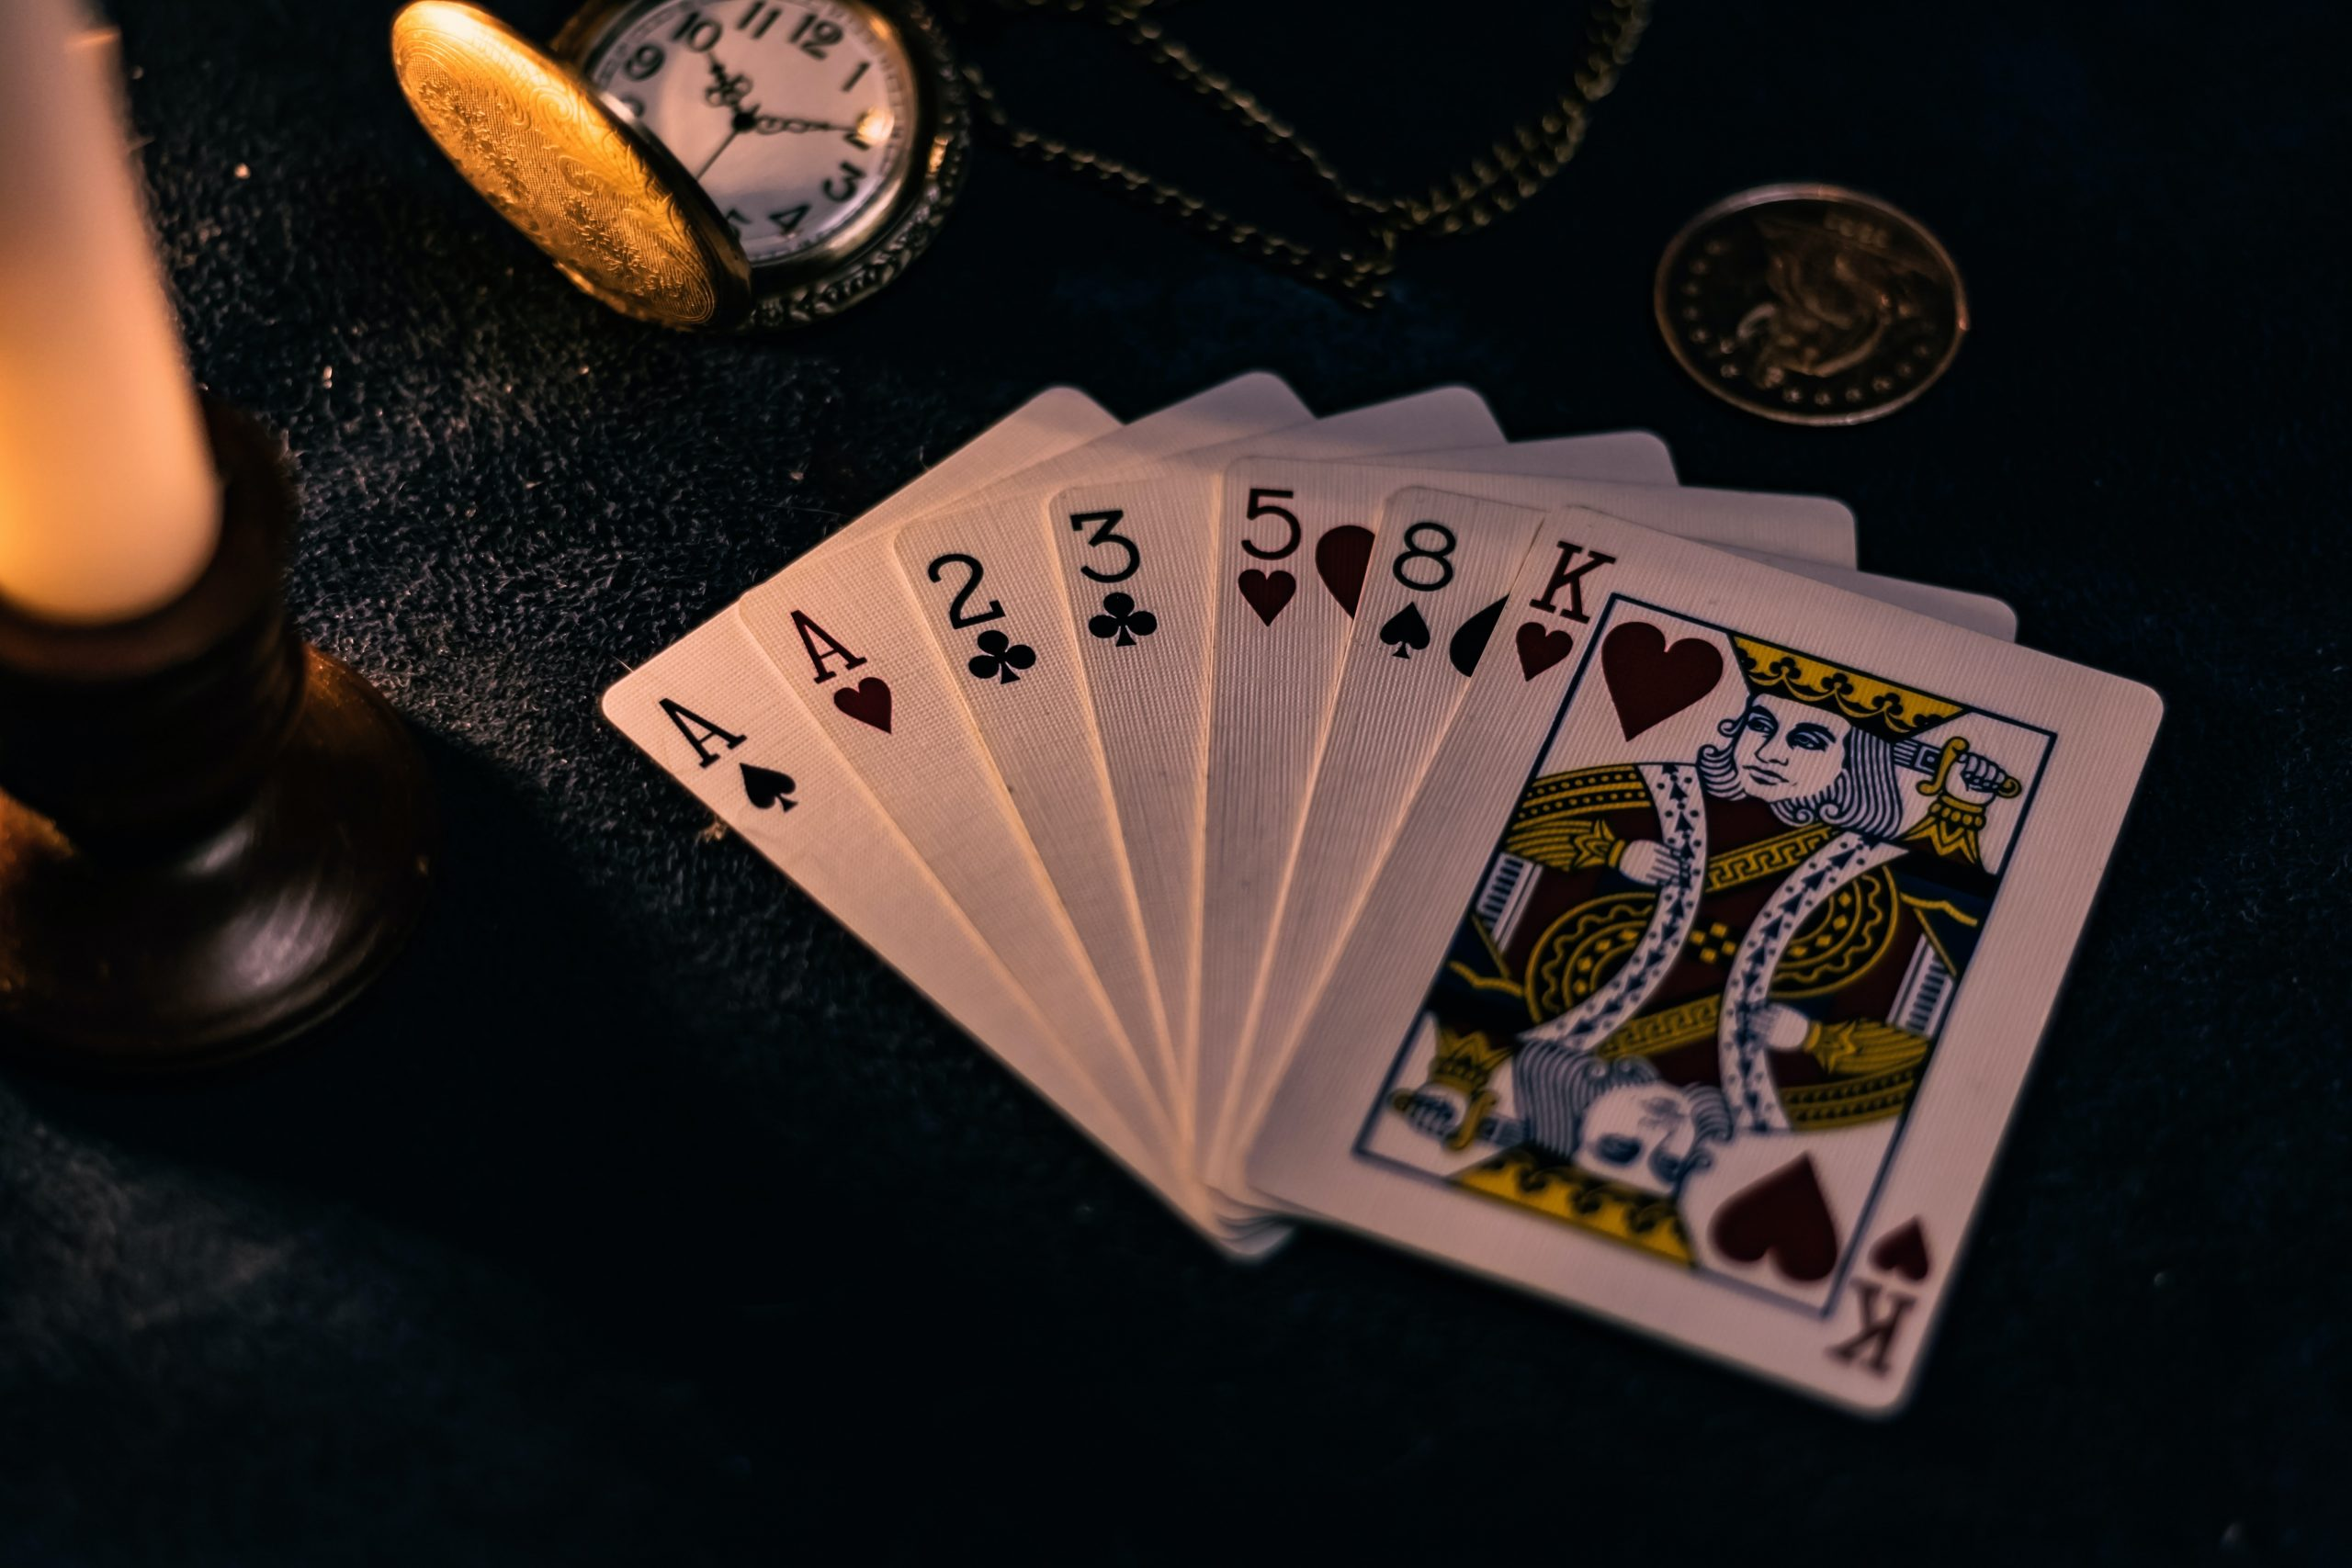 Are You Struggling With Online Gambling? Let's Chat